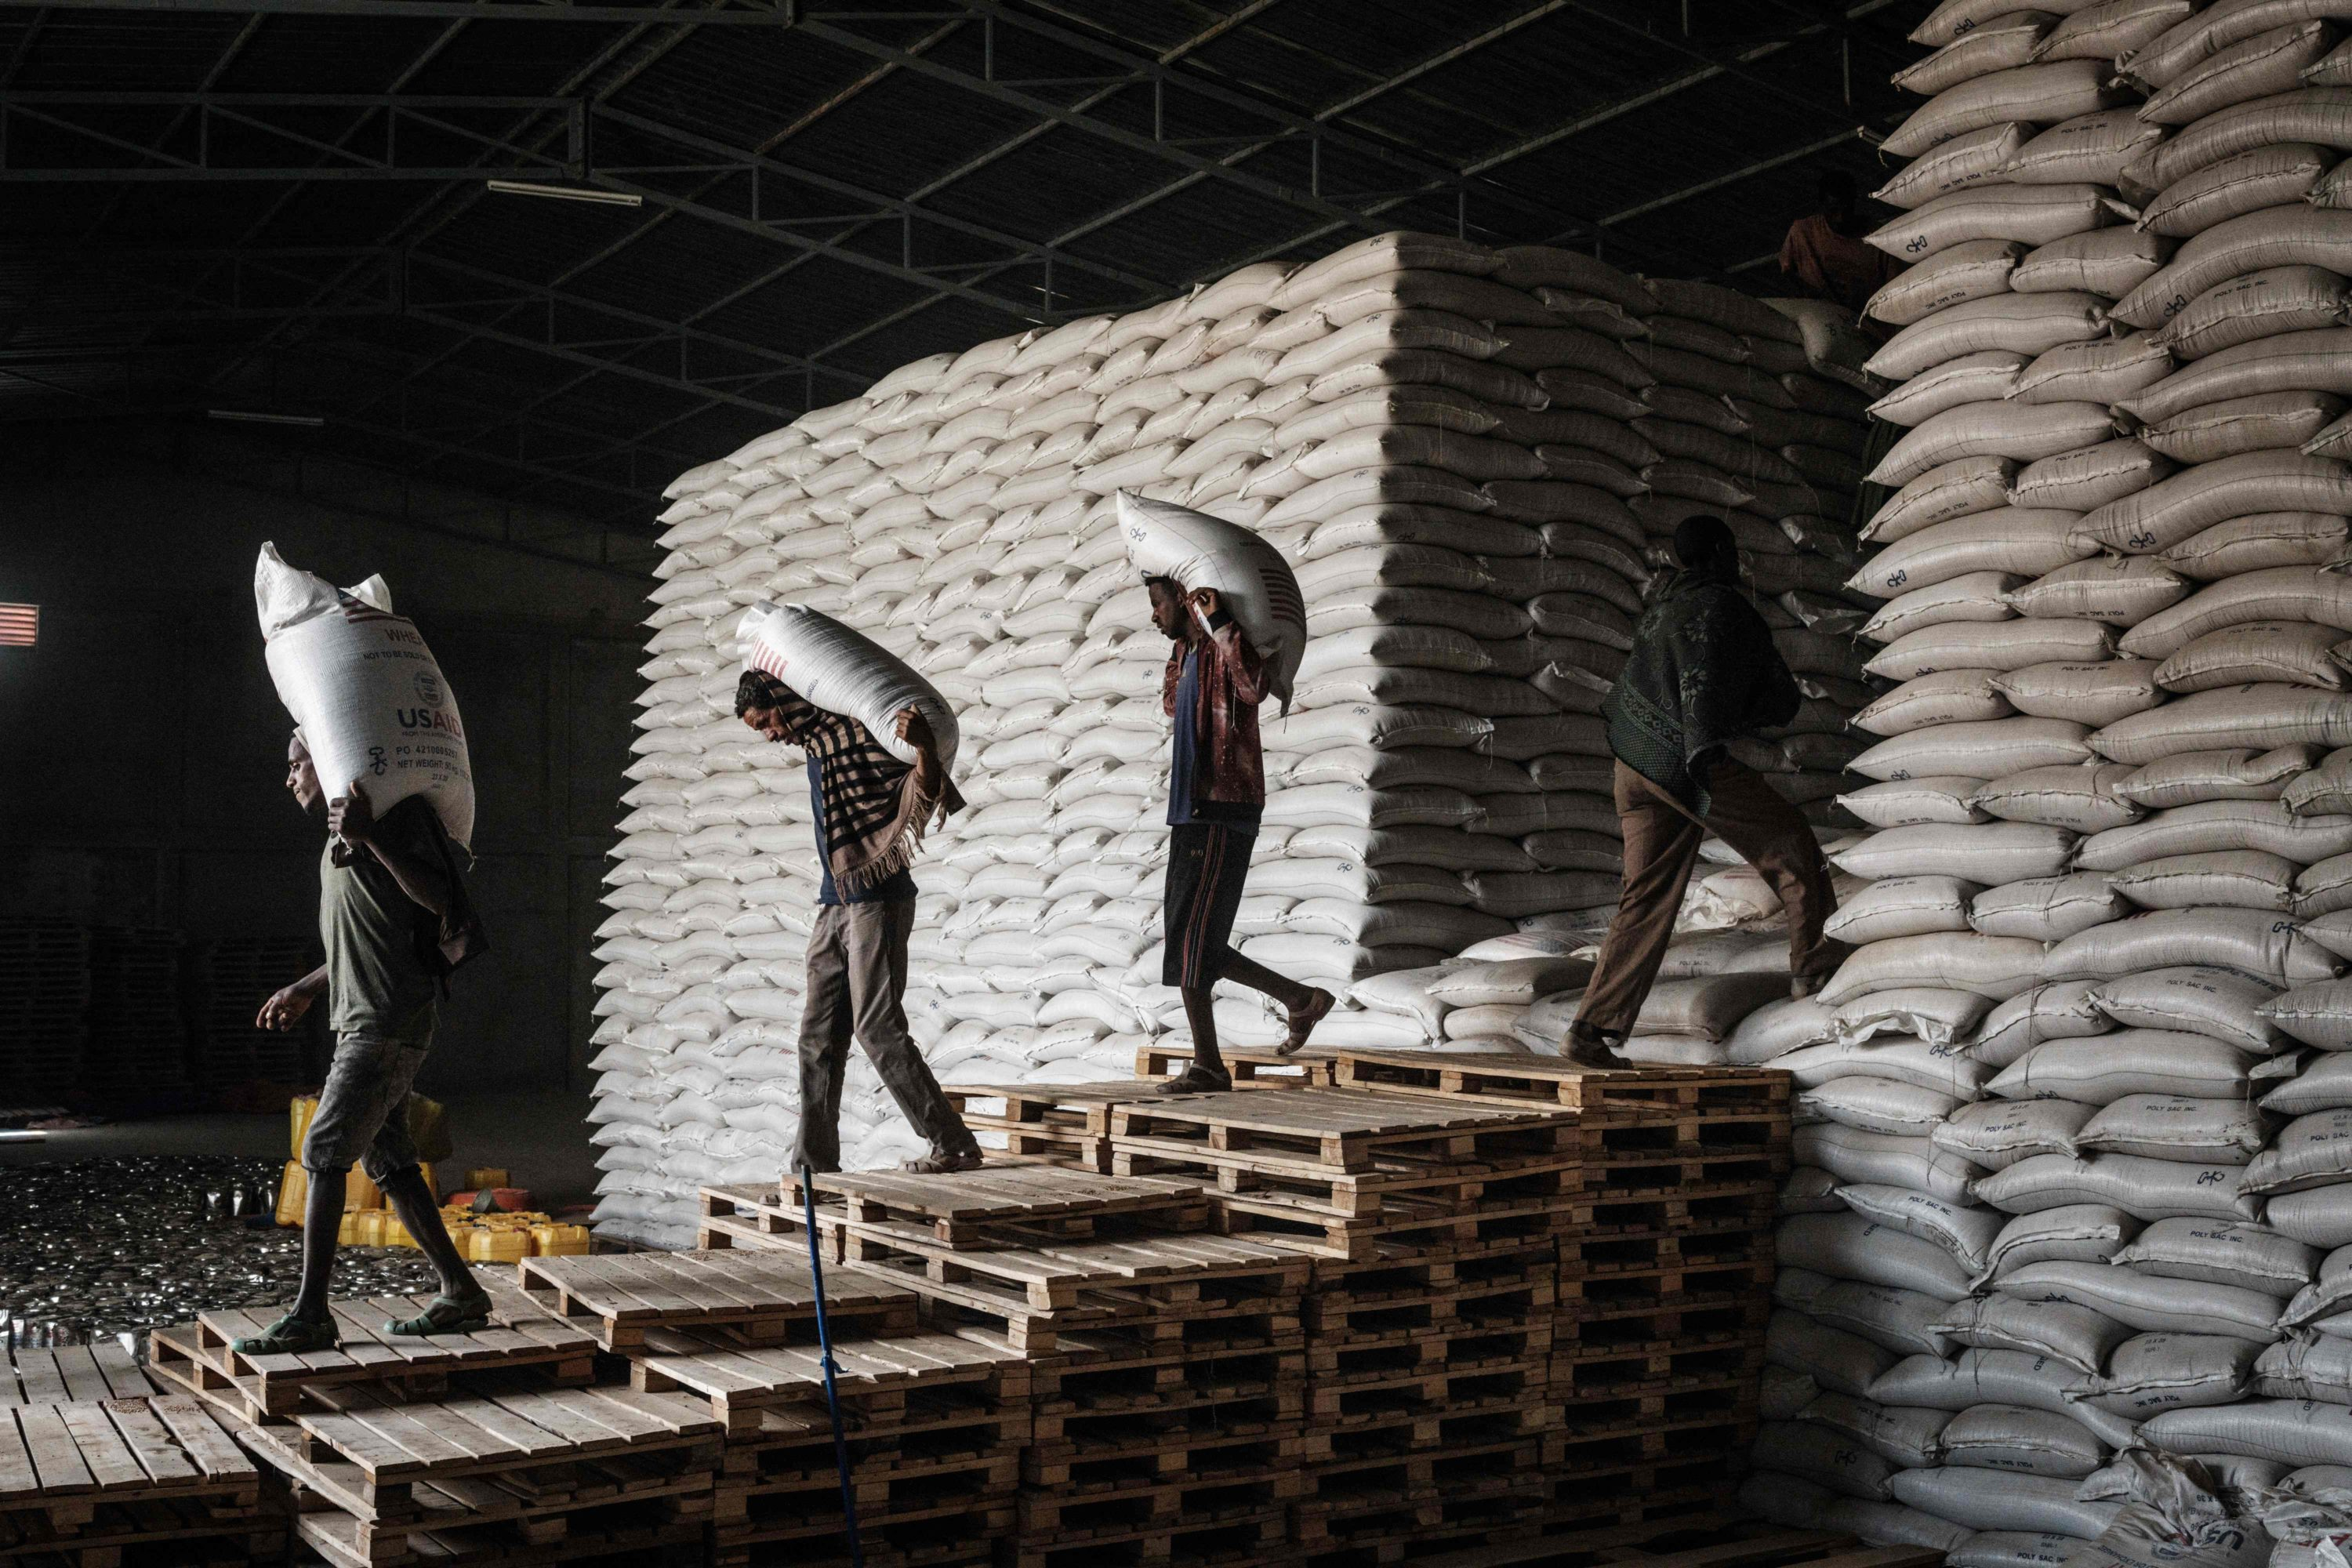 Workers carry sacks of wheat from stocks for a food distribution for 4503 people, who fled the violence in Ethiopia's Tigray region, organised by the local NGO Relief Society of Tigray (REST) in Mekele, the capital of Tigray region on June 22, 2021. (Photo by Yasuyoshi CHIBA / AFP)